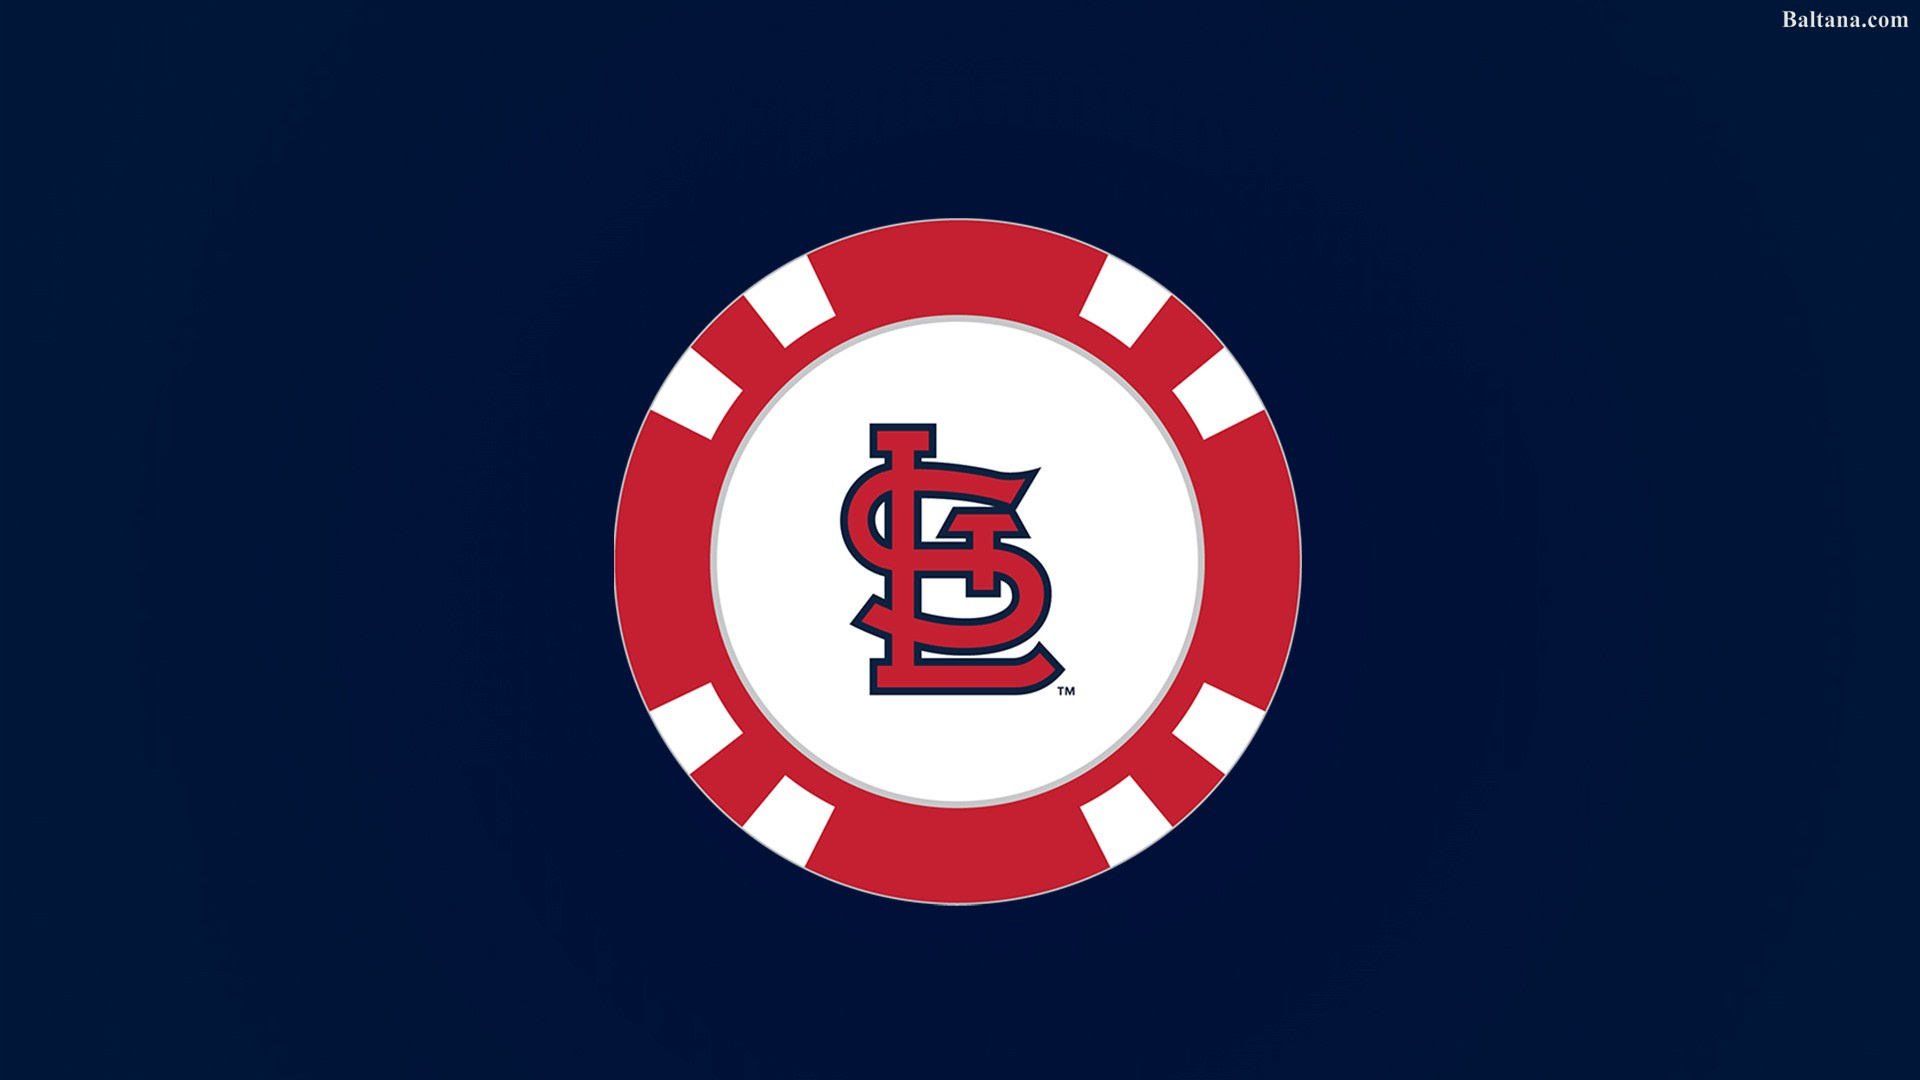 St Louis Cardinals High Definition Wallpaper 33337 Baltana